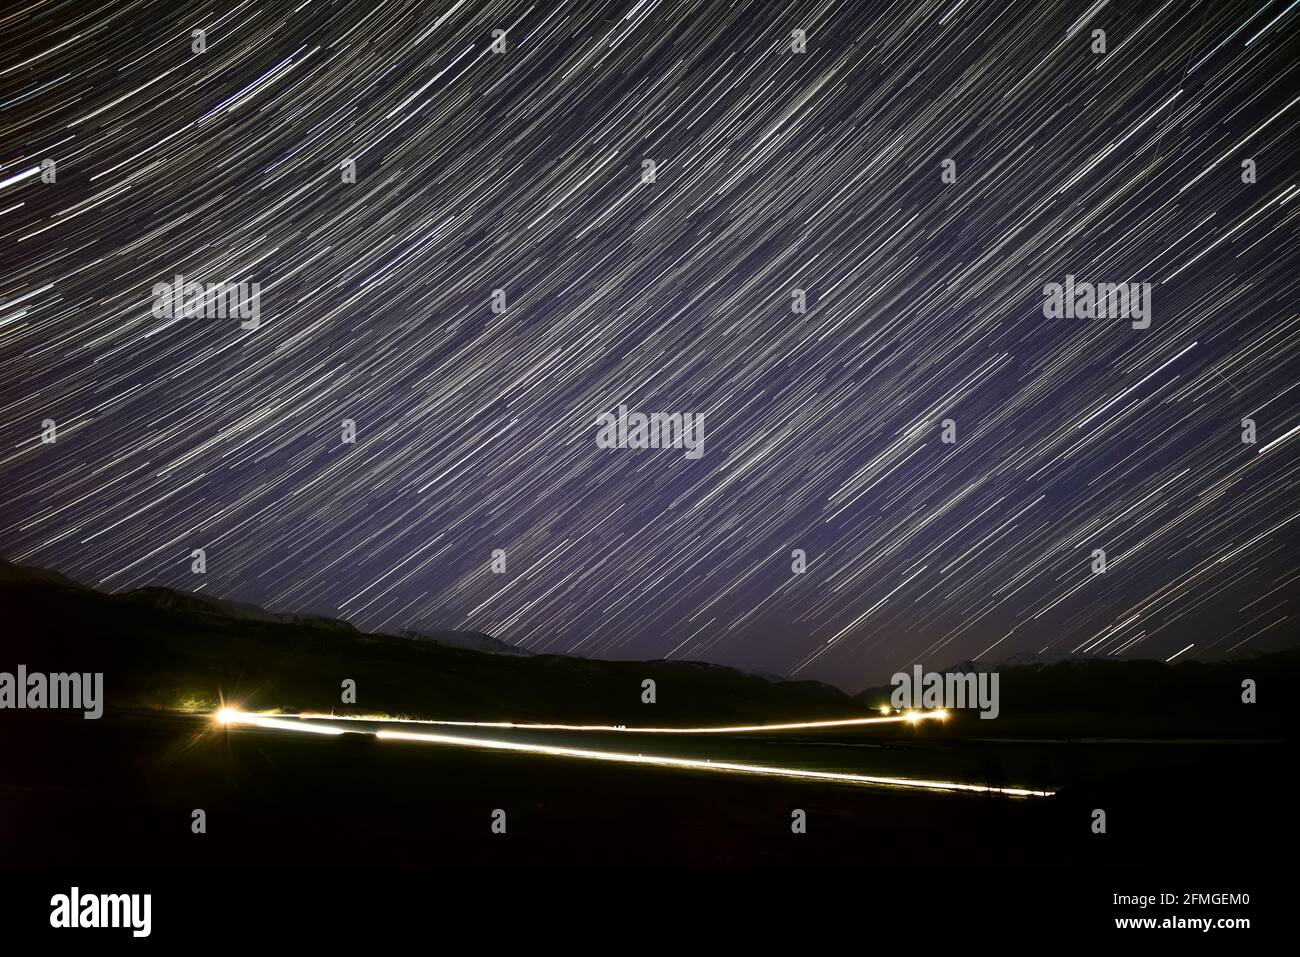 Stars Falling From The Sky High Resolution Stock Photography And Images Alamy